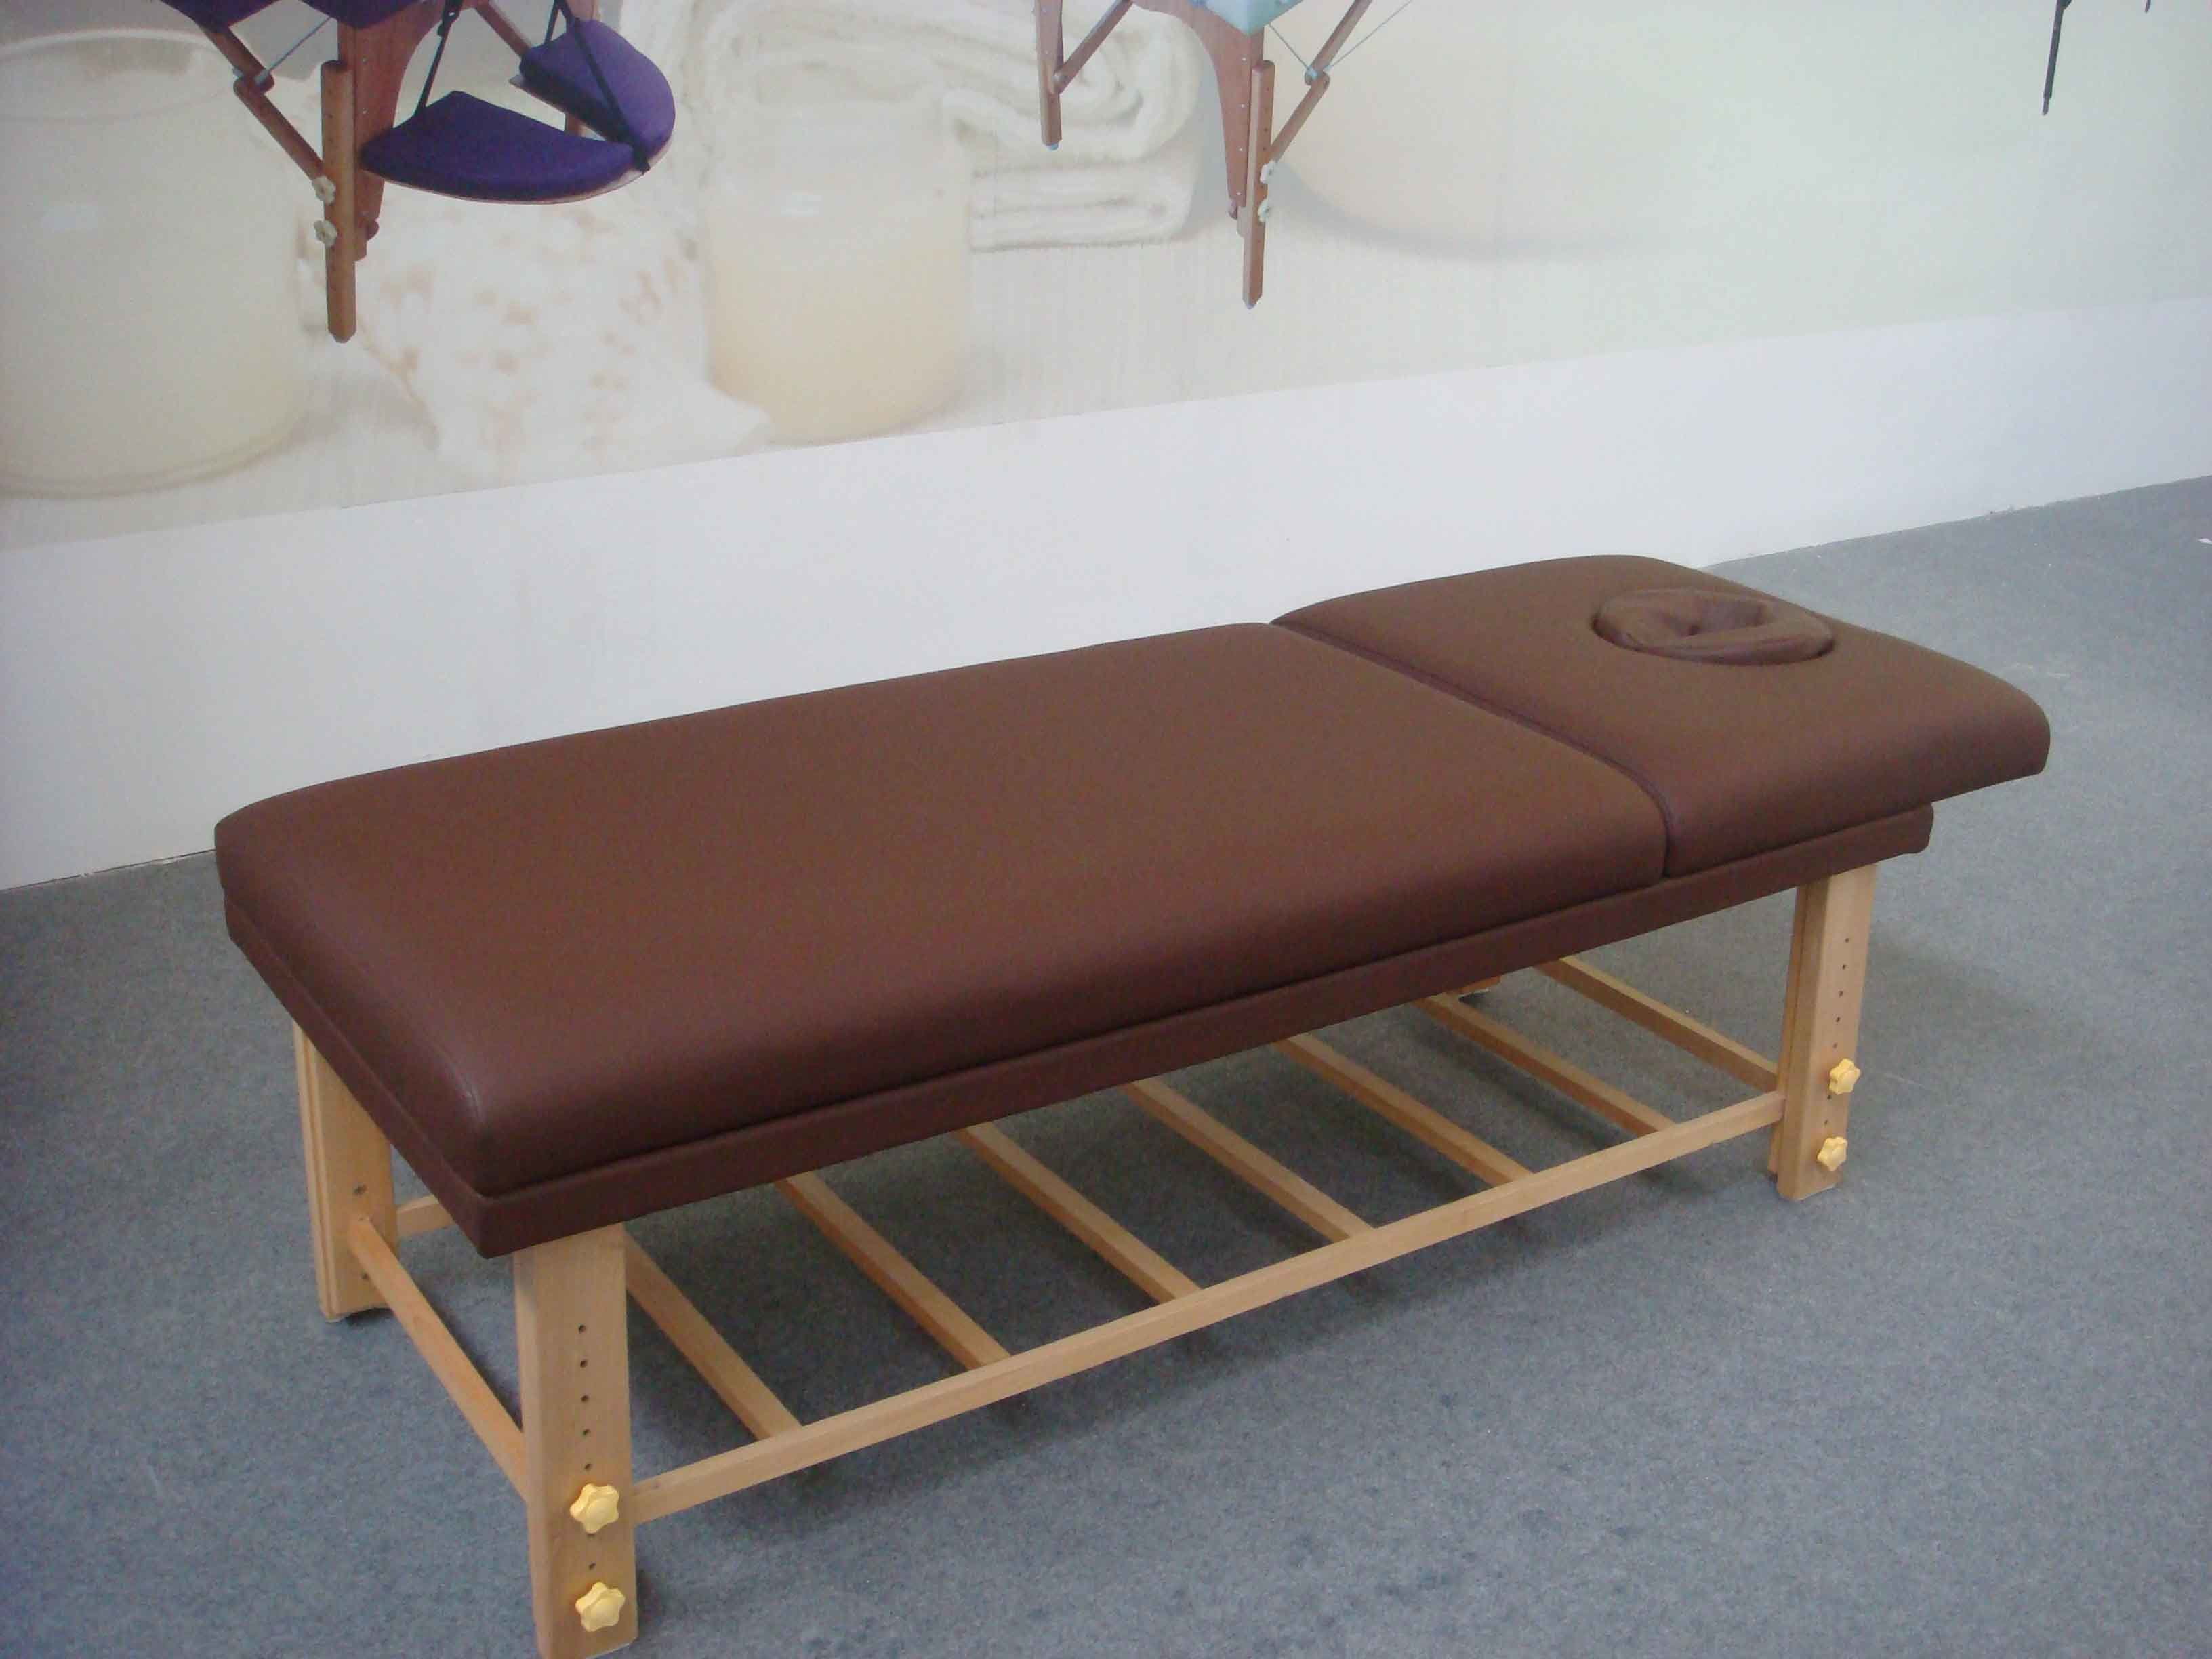 Deluxe Stationary Massage Bed with Backrest and Storage-Sm-002